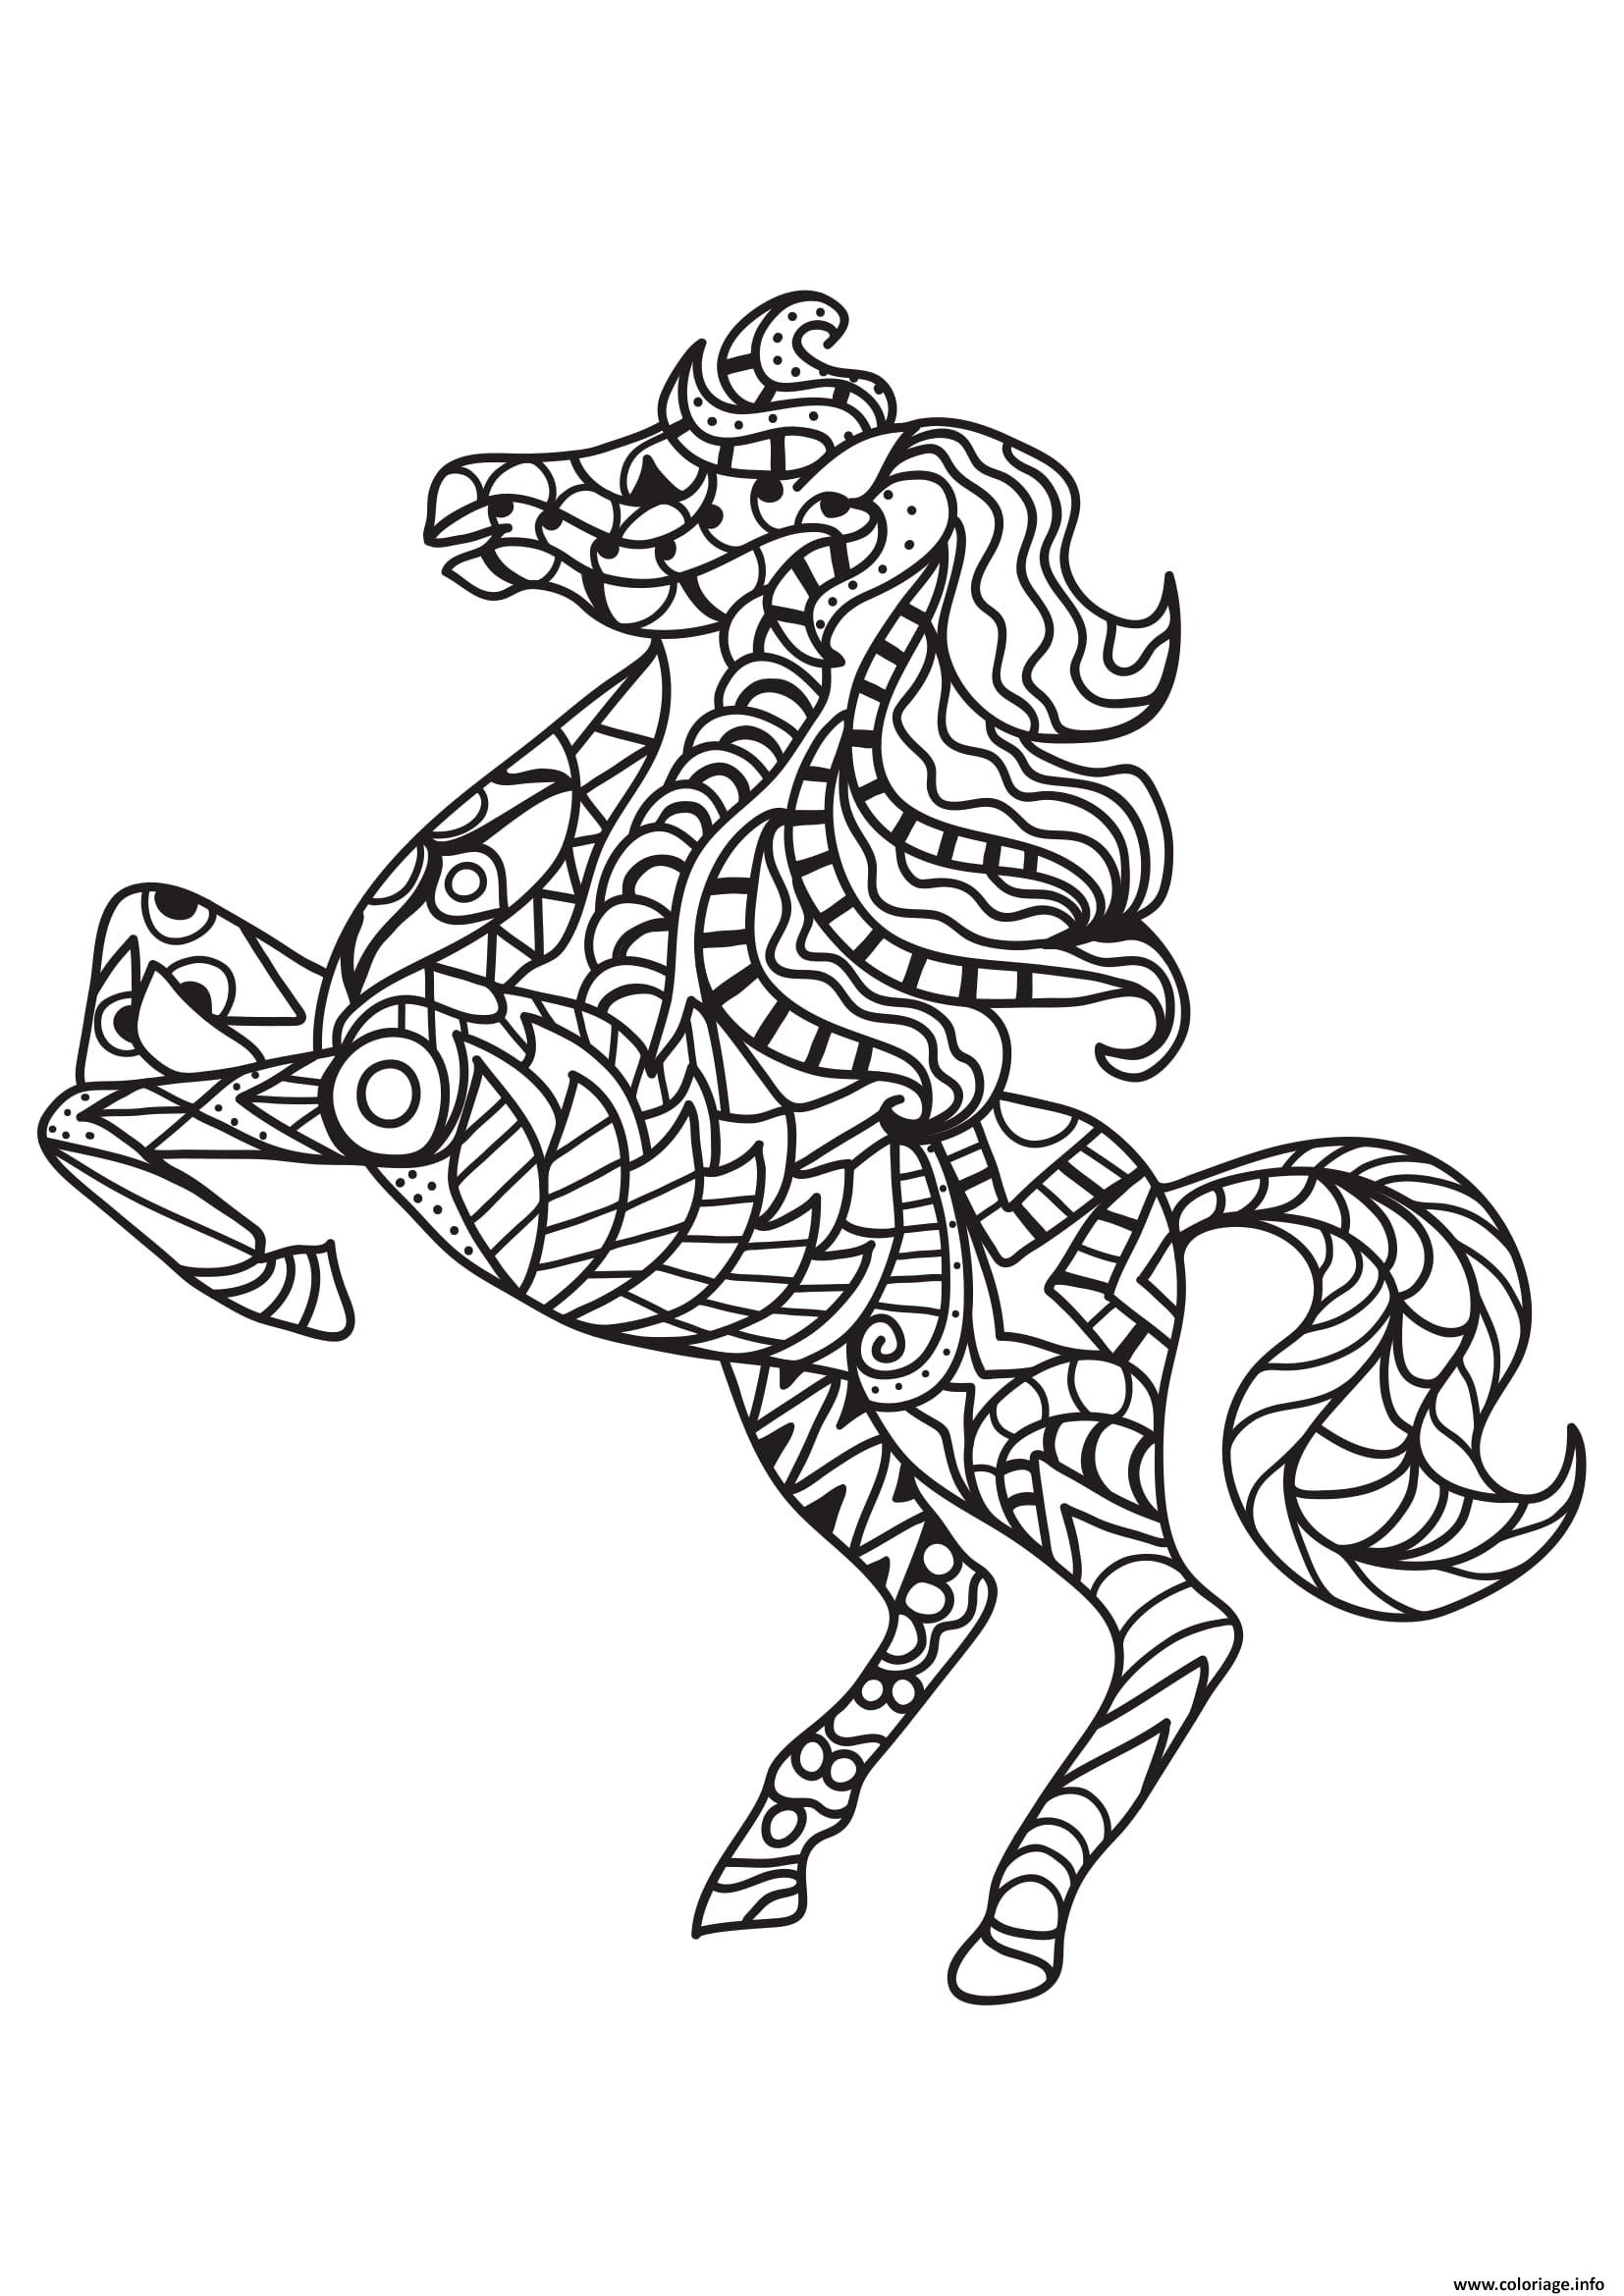 Coloriage Adulte Cheval Antistress 06 Dessin